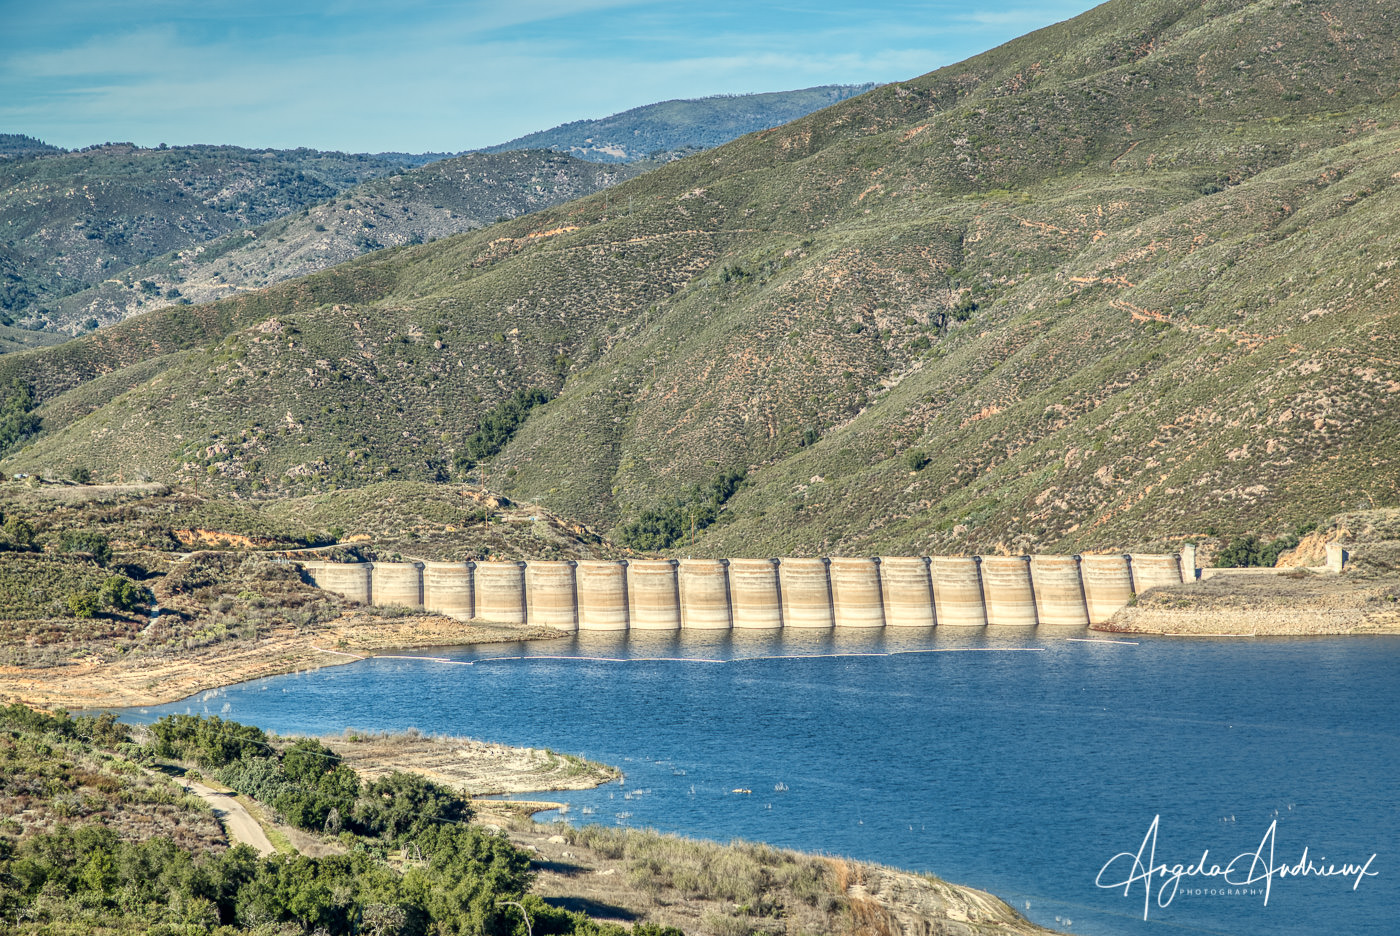 Sutherland Recevoir with the Sutherland Dam in the background, Ramona, CA